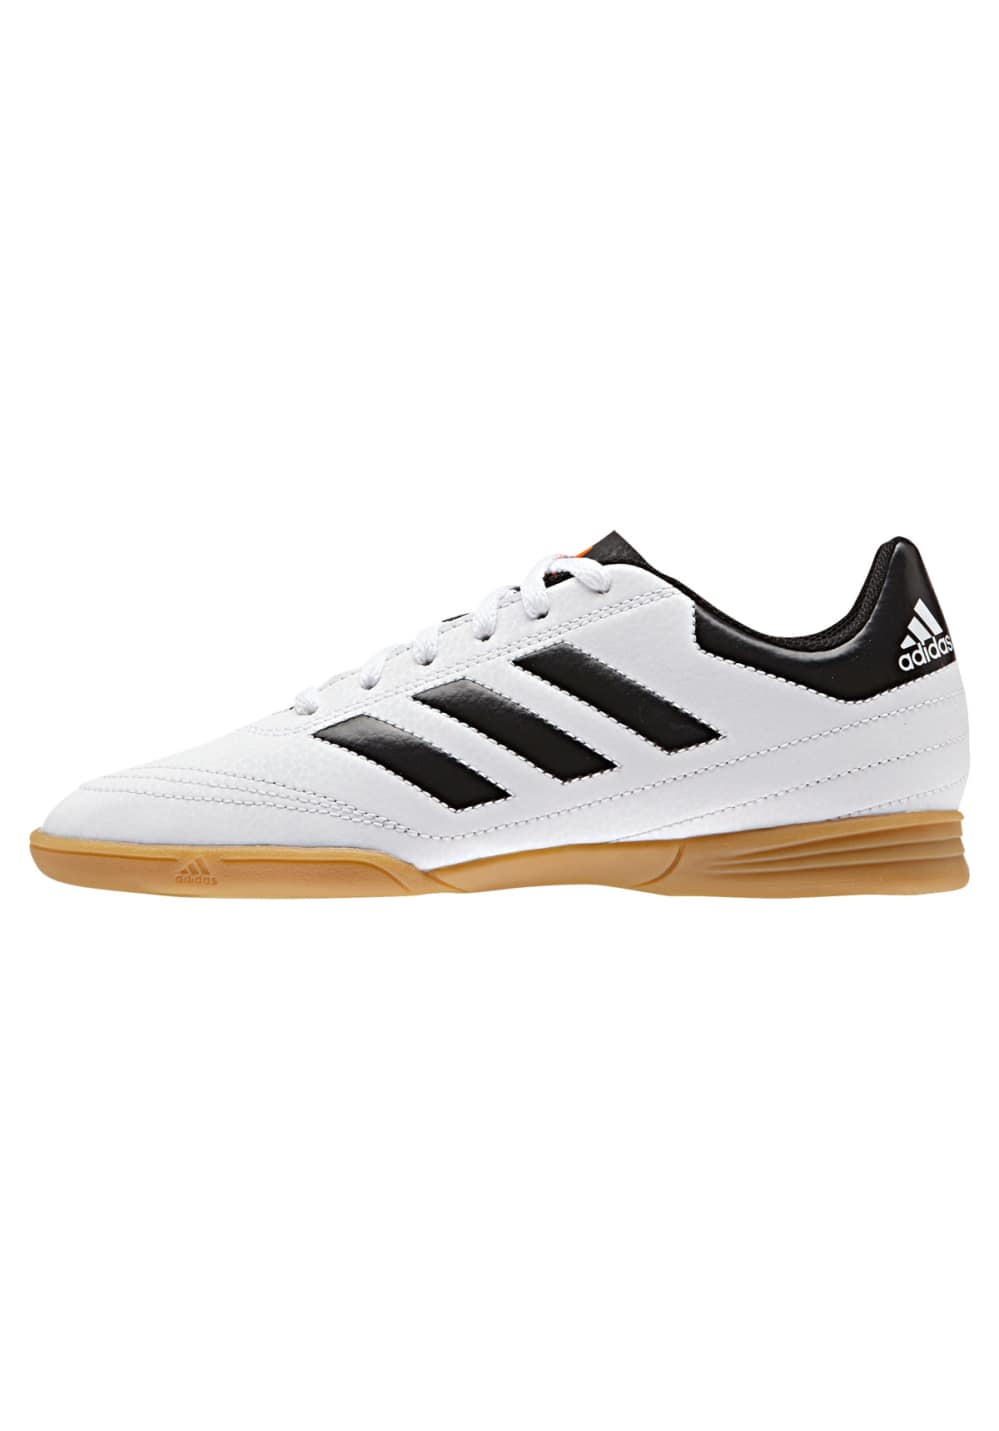 adidas Goletto 6 Indoor Football Shoes White